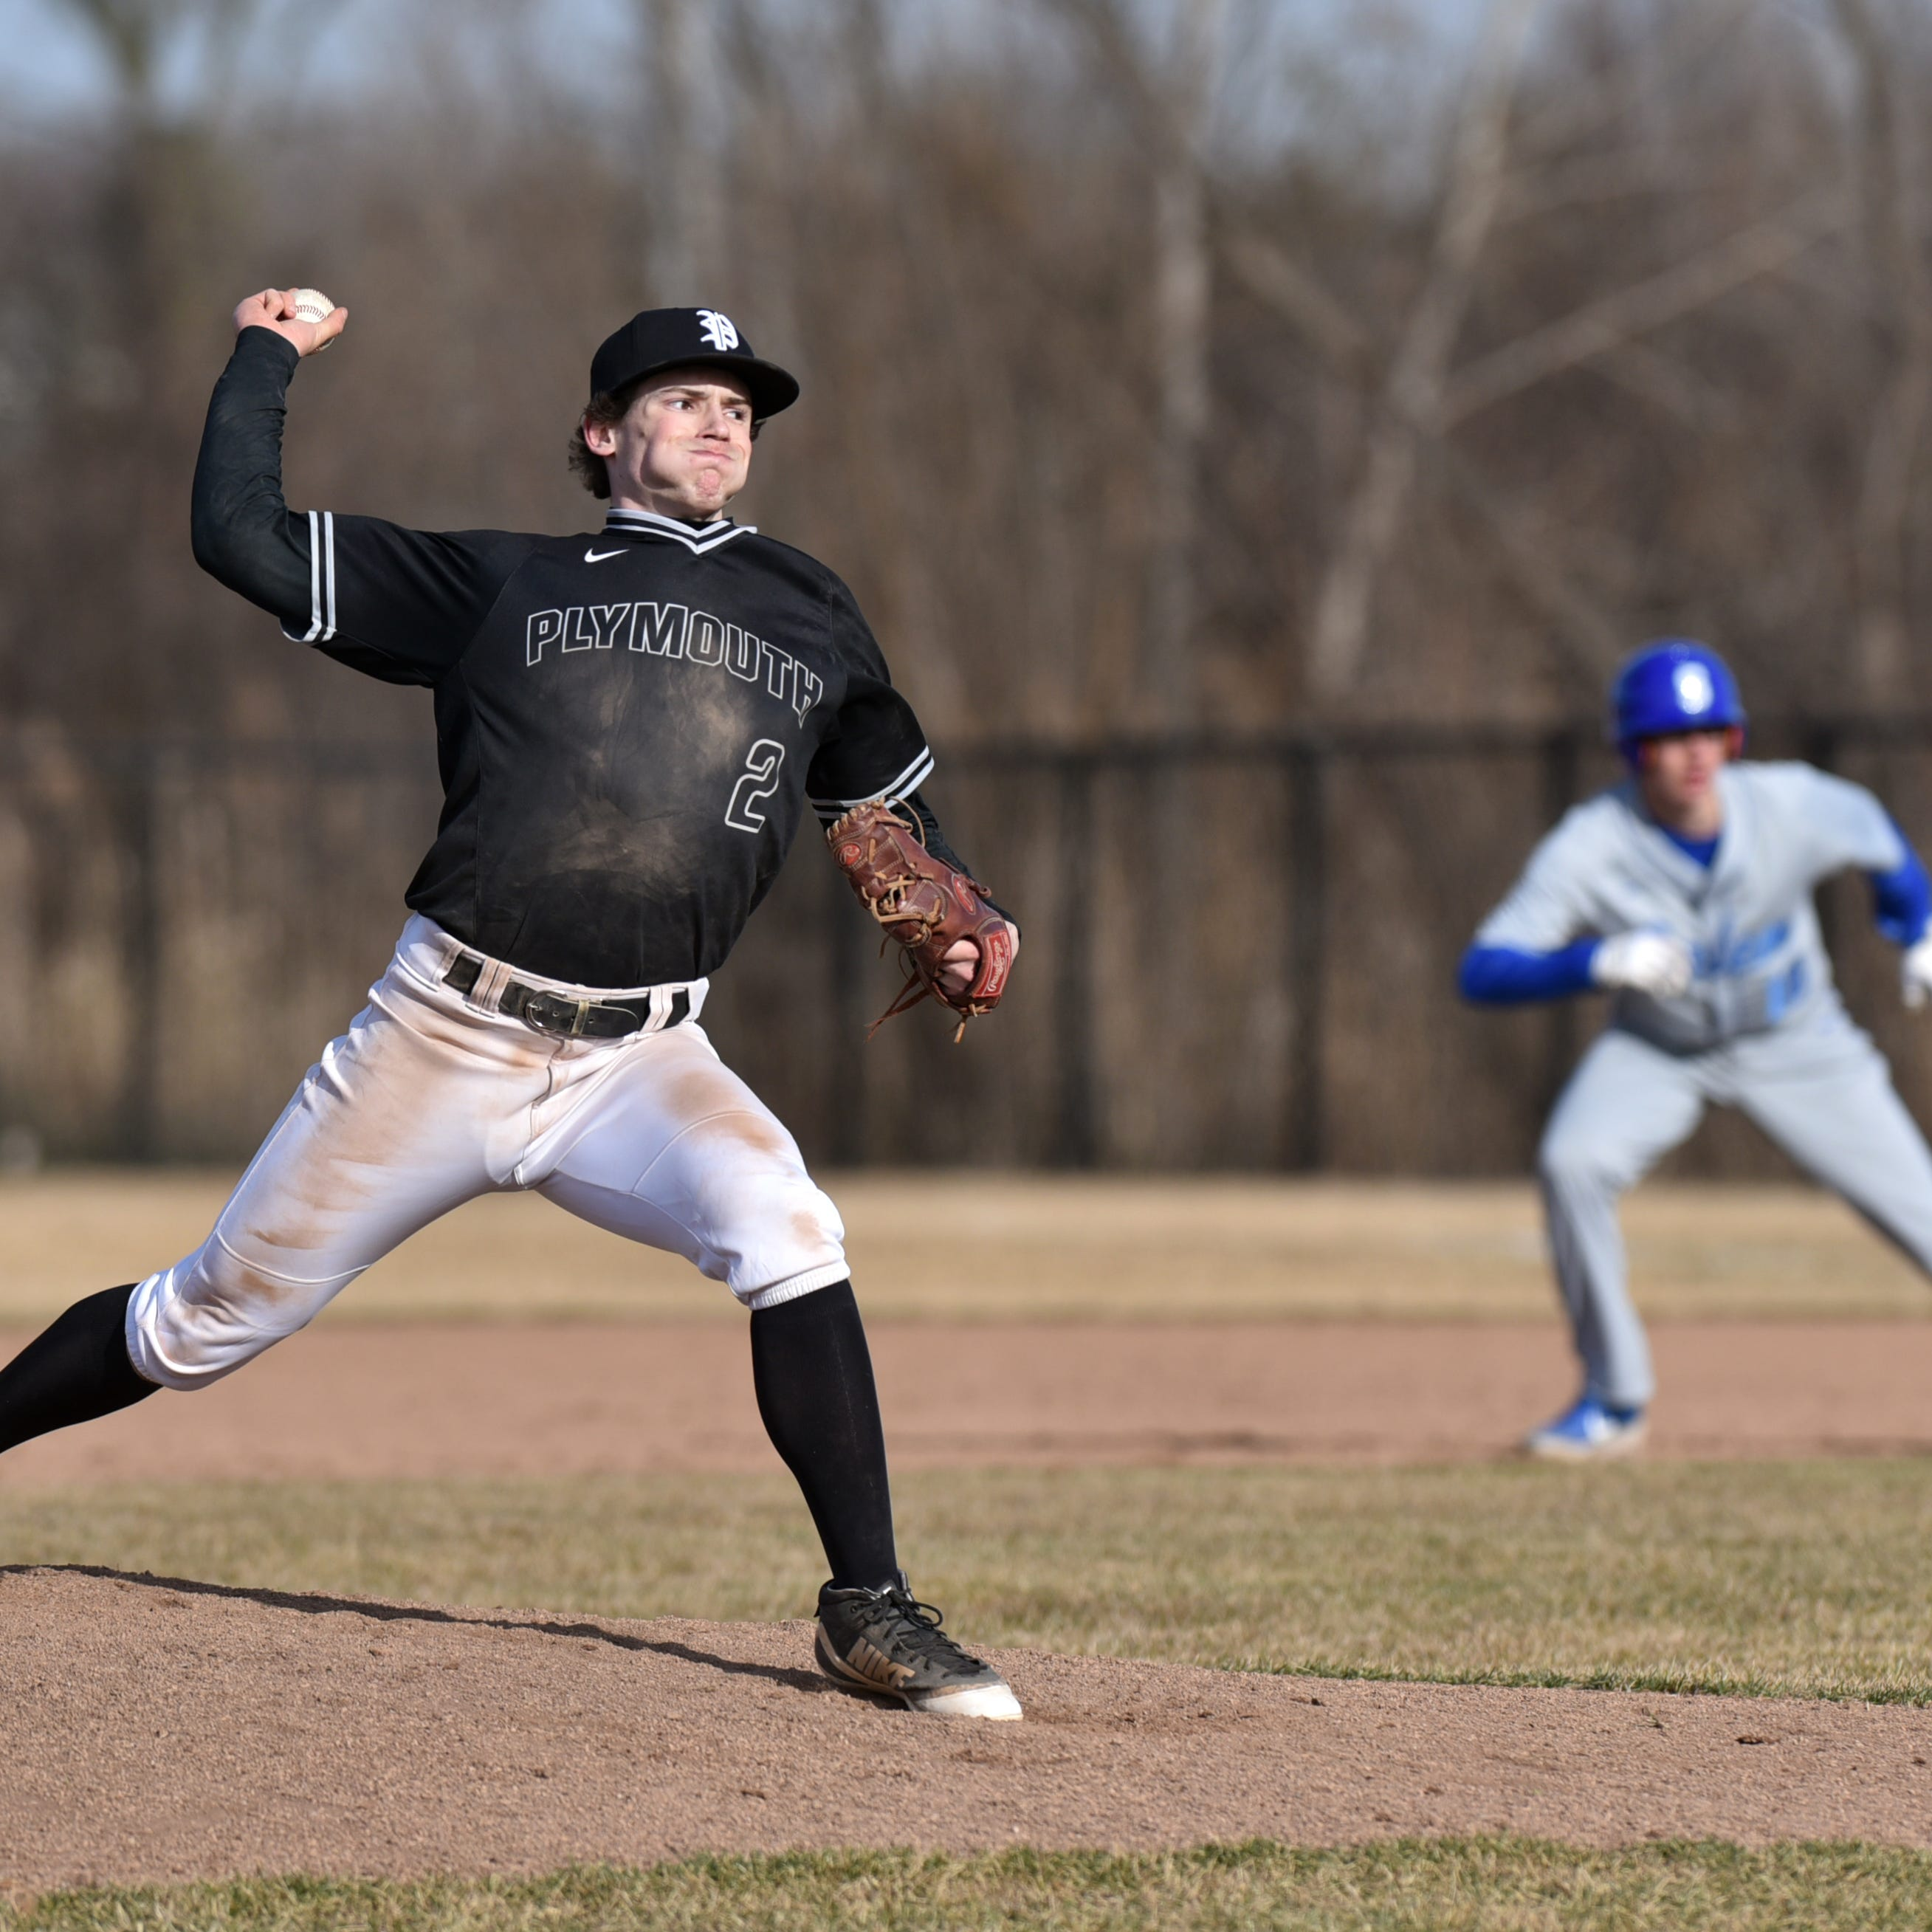 Plymouth baseball holds off Salem for dramatic rivalry win